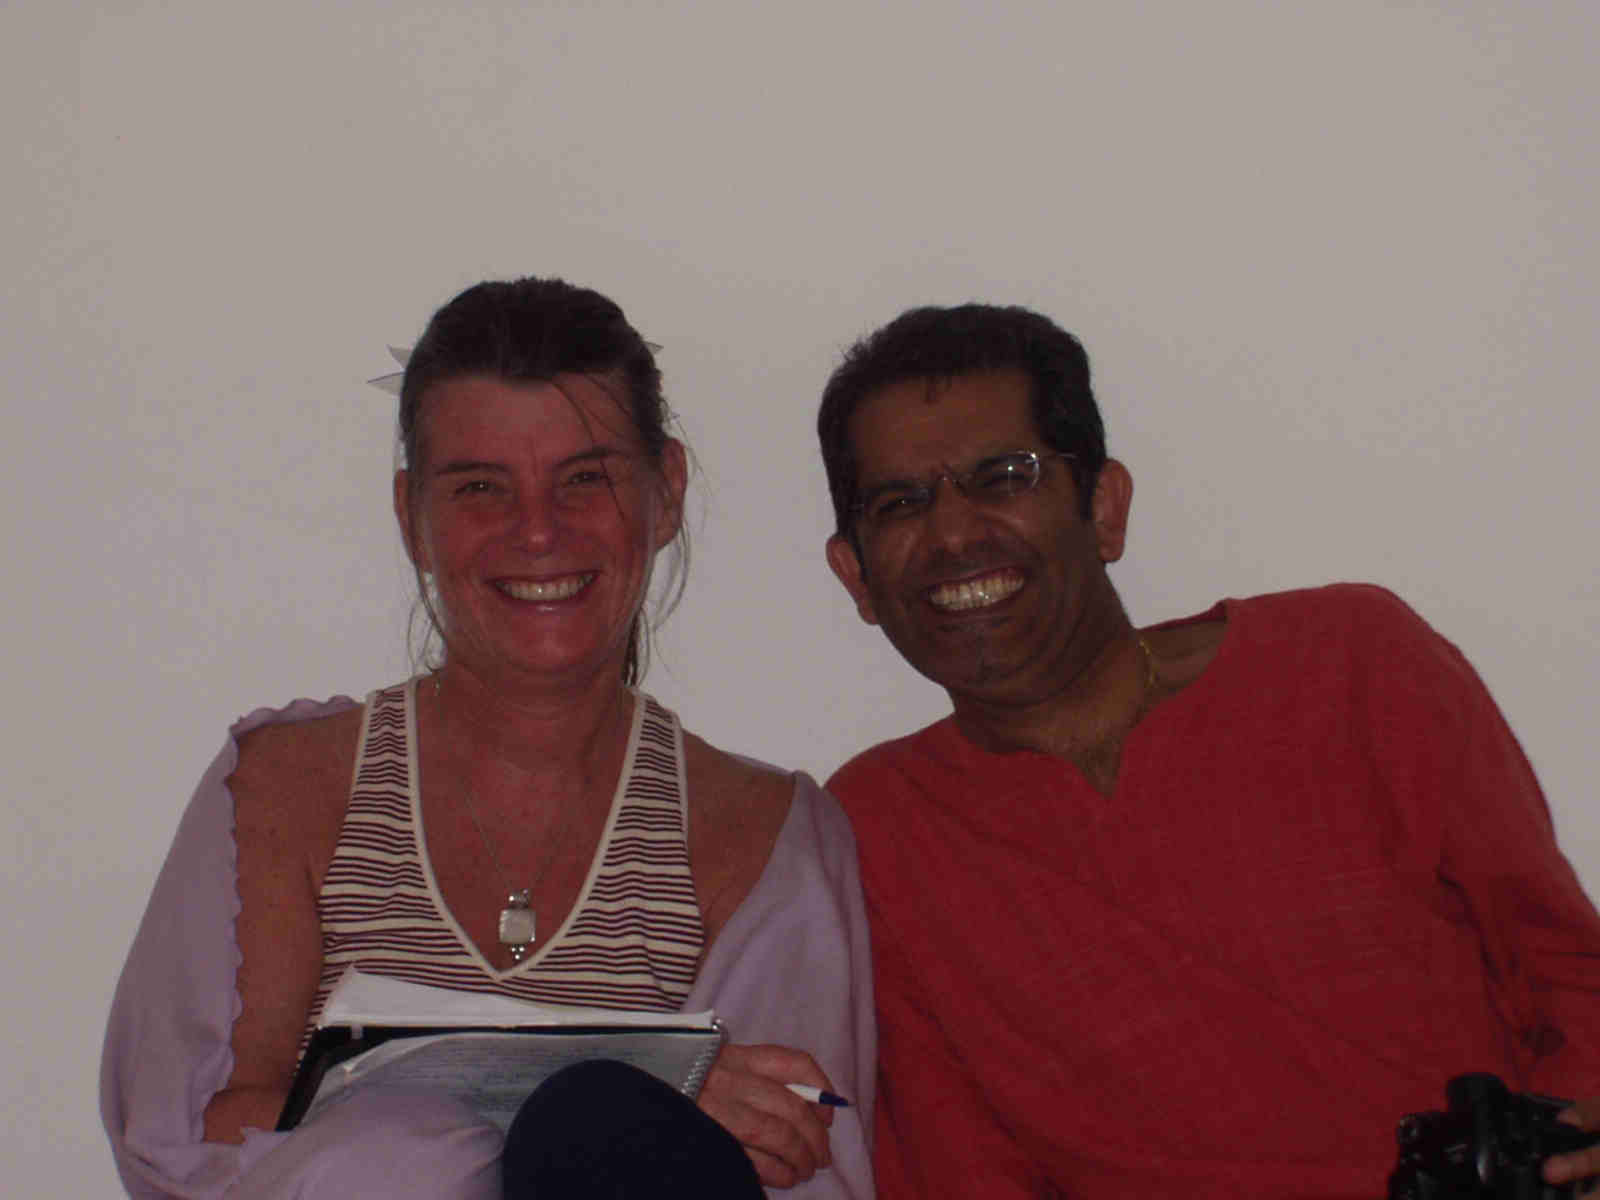 Vanessa with Dhiren, another Energy Enhancement course member